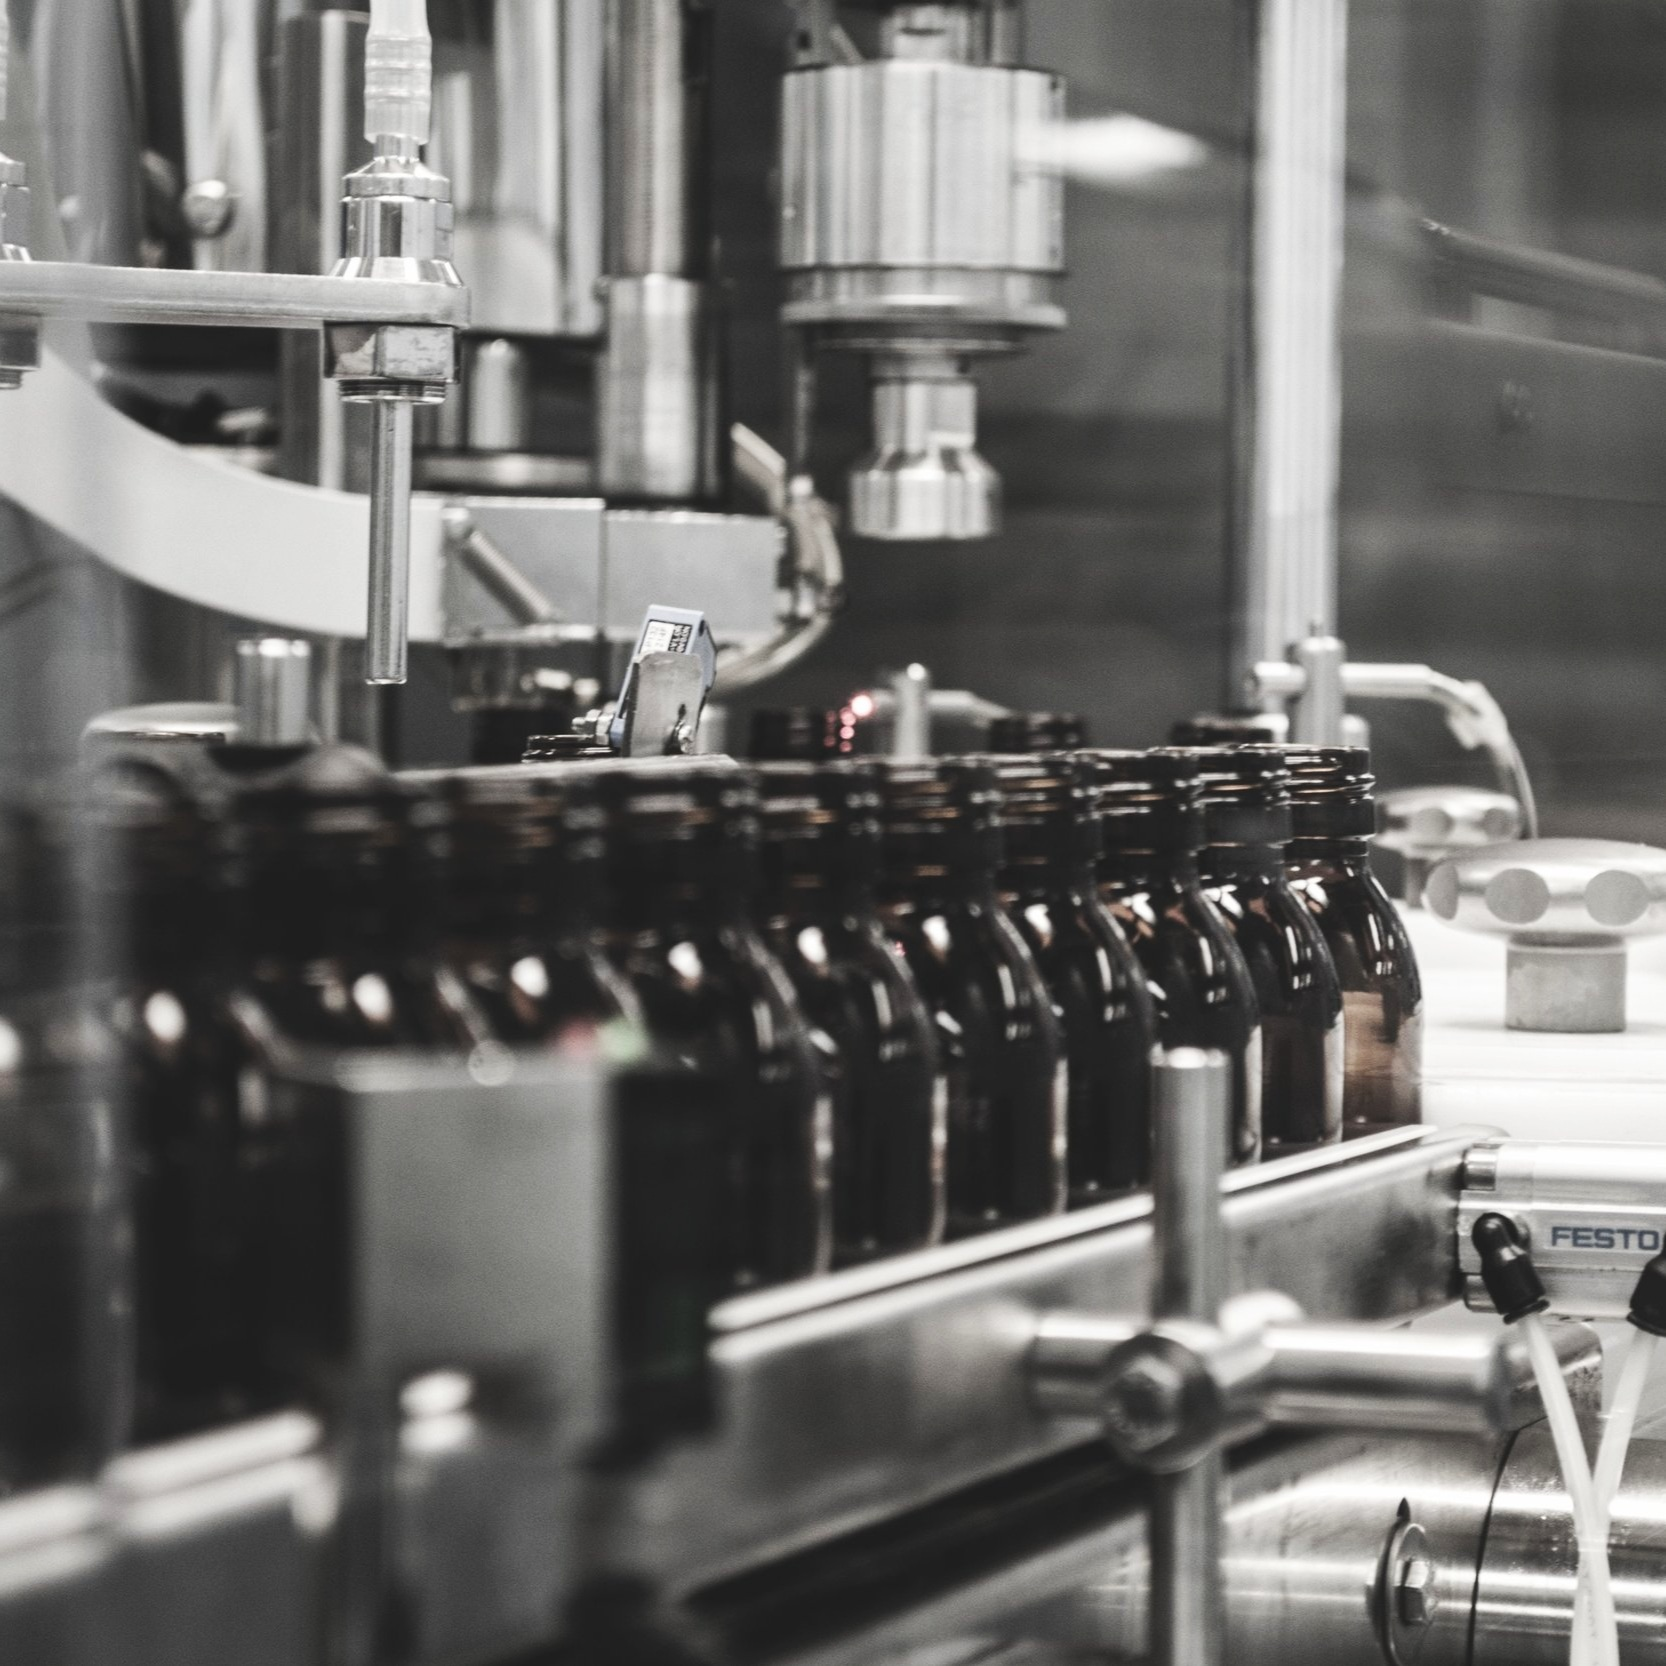 Fragrance Production - With deeply experienced partners in fragrance manufacturing, we manage the process from beginning to end. All fragrances will pass our strict quality control tests to ensure consistency and adherence to safety regulations. Fine fragrance will be compounded, bottled, labeled and shipped to you ready to sell.